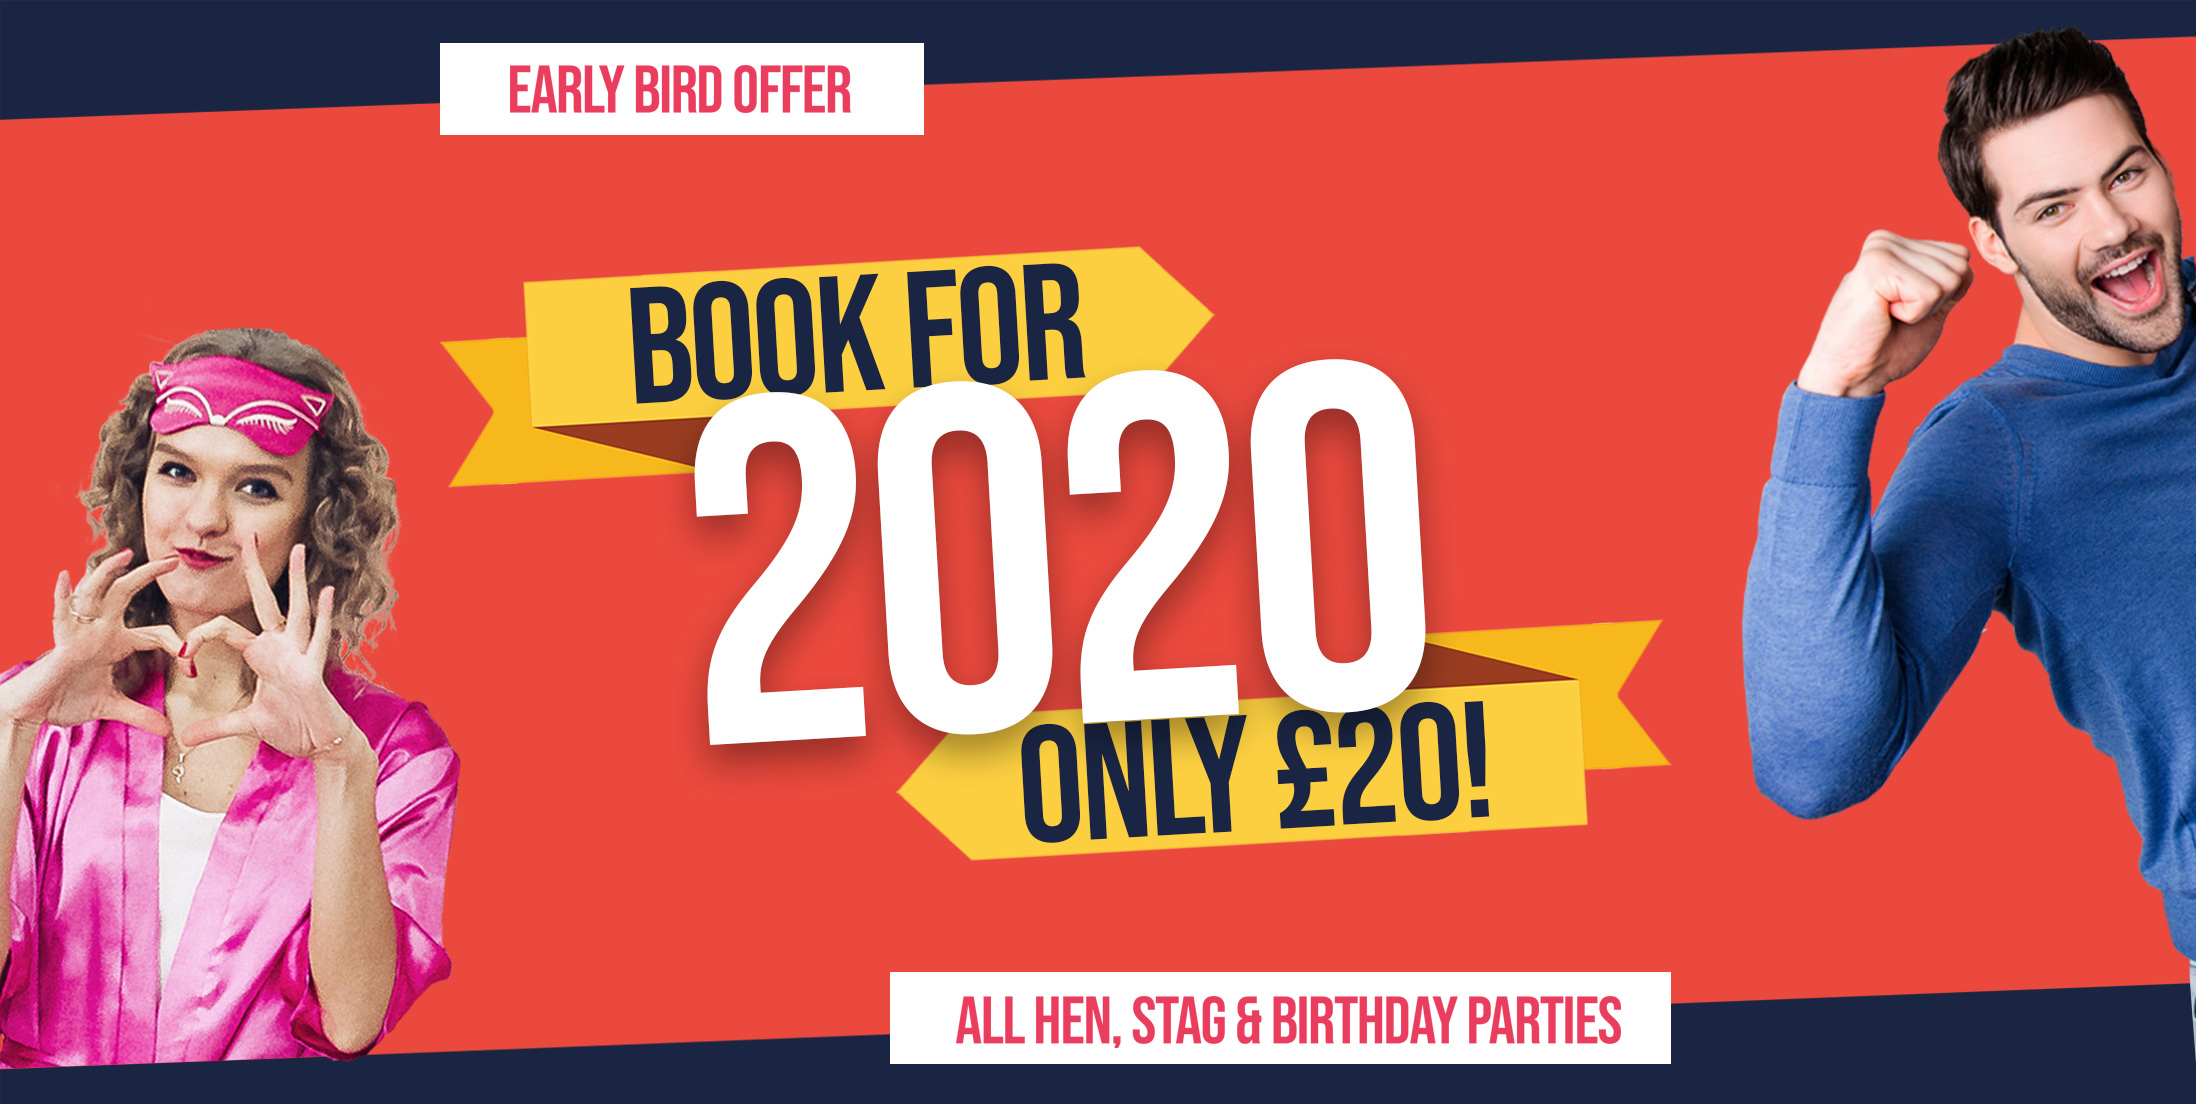 2020 Early Bird Offer